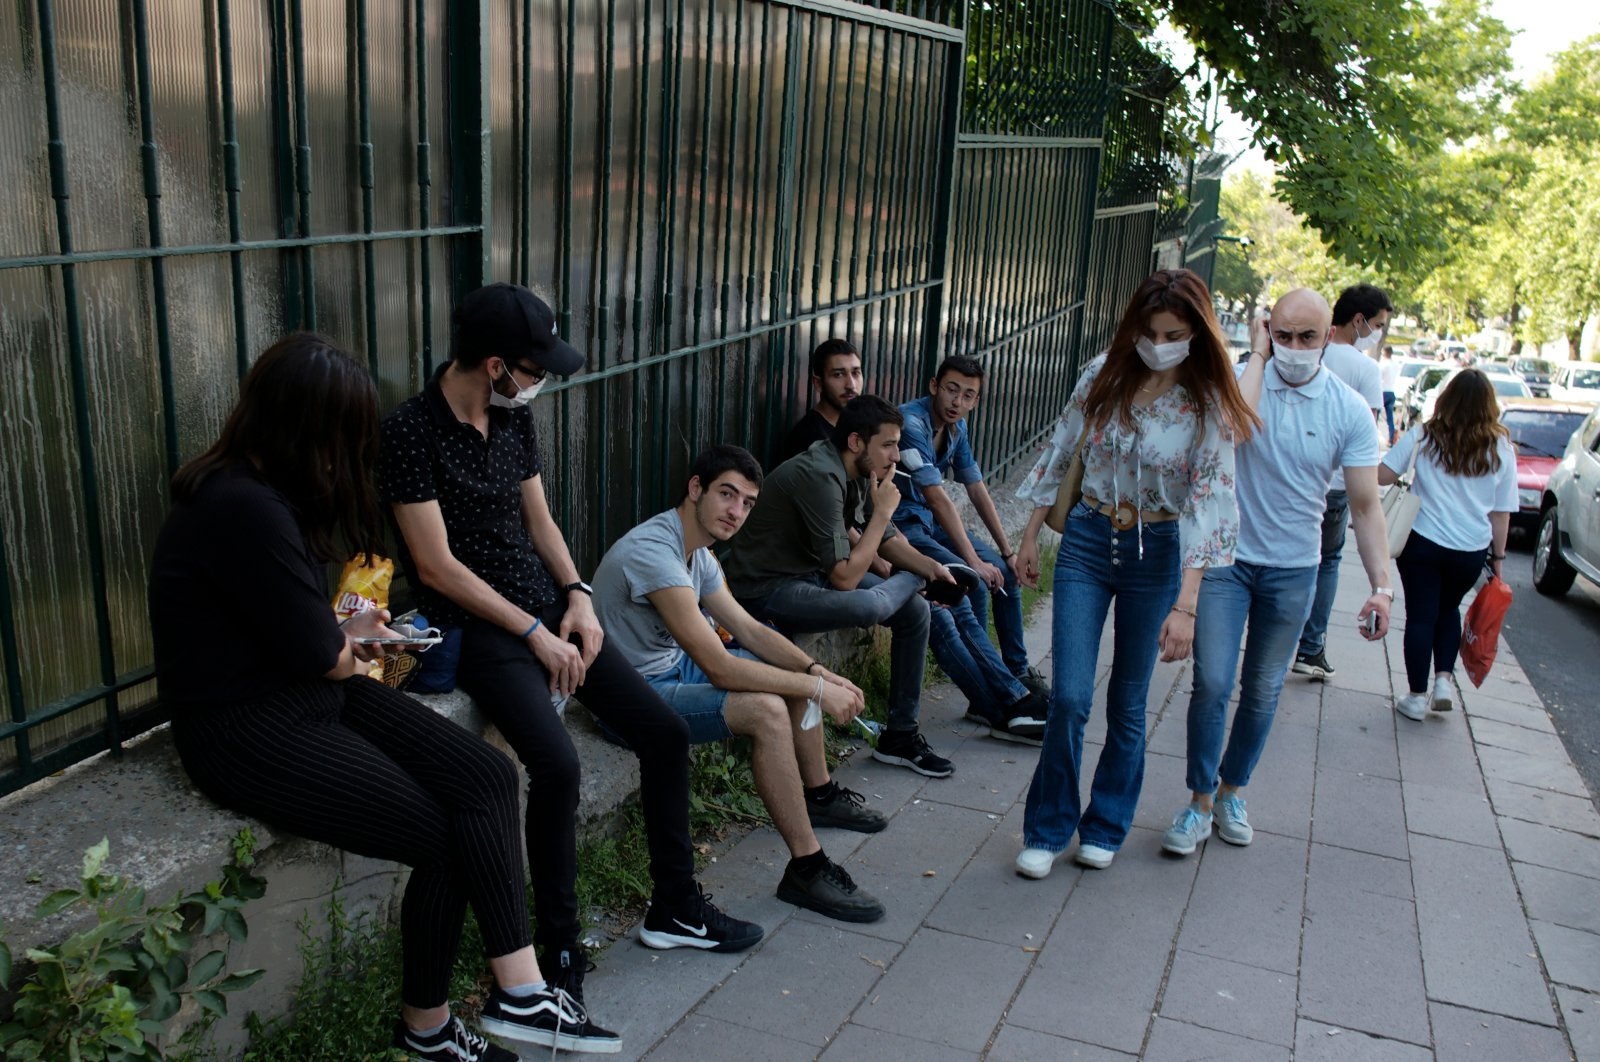 People wearing face masks to protect against the spread of coronavirus, walk past others without face coverings, in Ankara, Monday, June 29, 2020. (AP Photo)